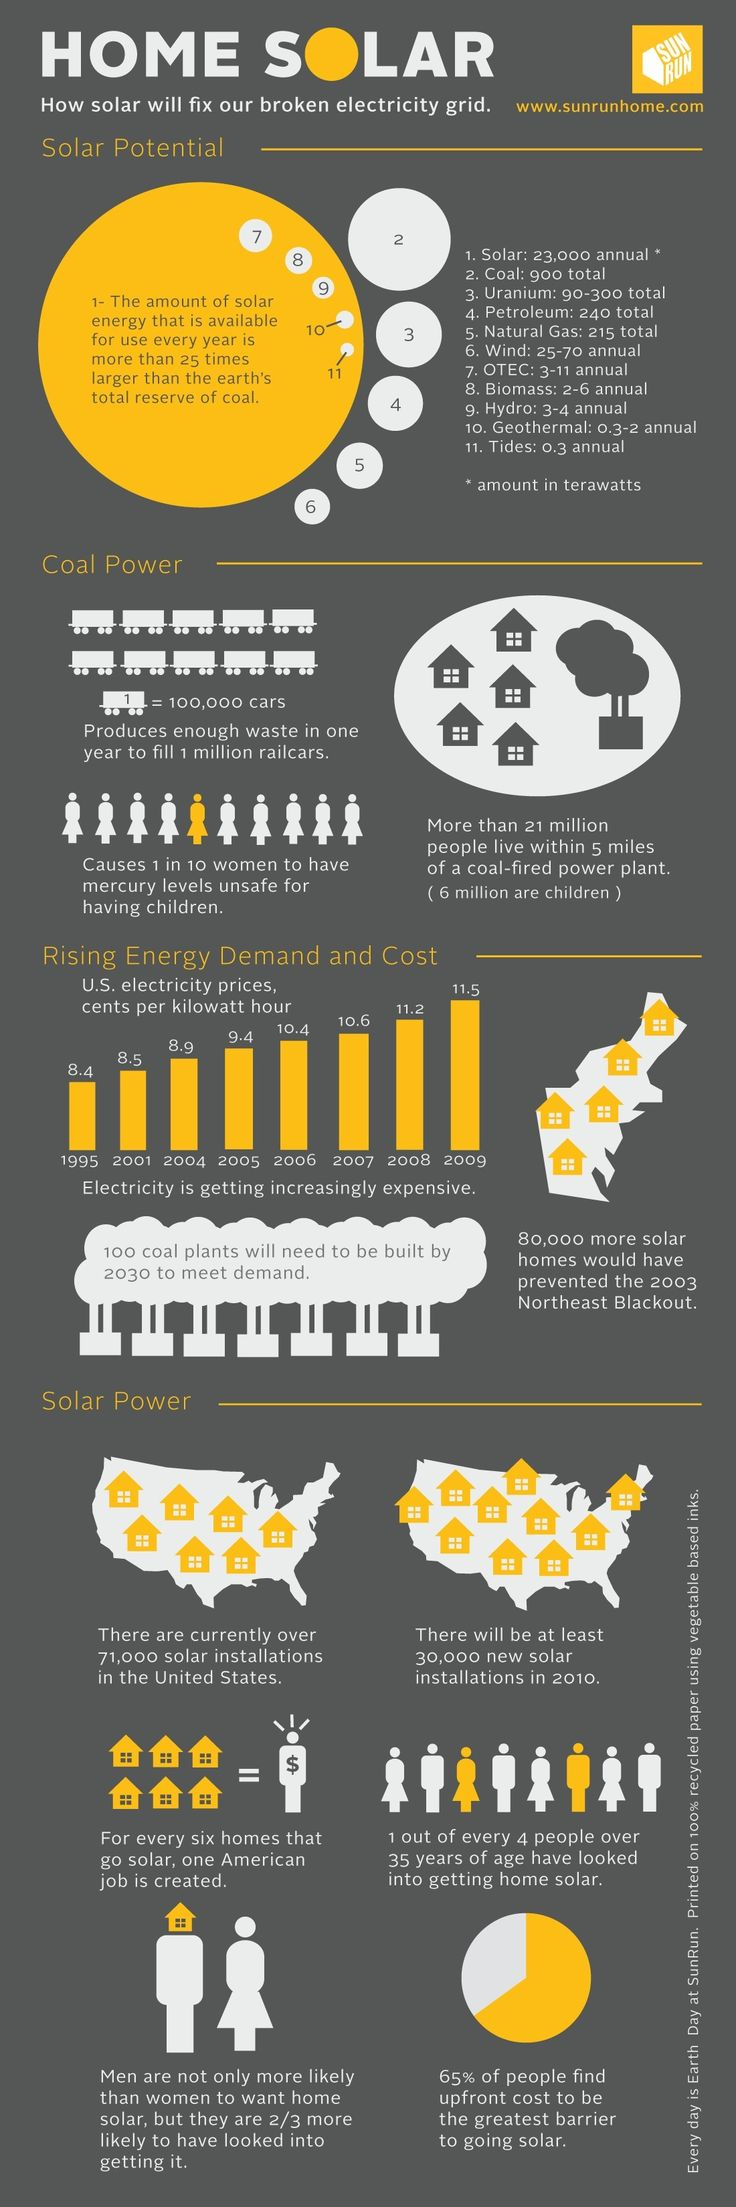 23 best images about wind turbine efficiency on pinterest for Energy efficiency facts